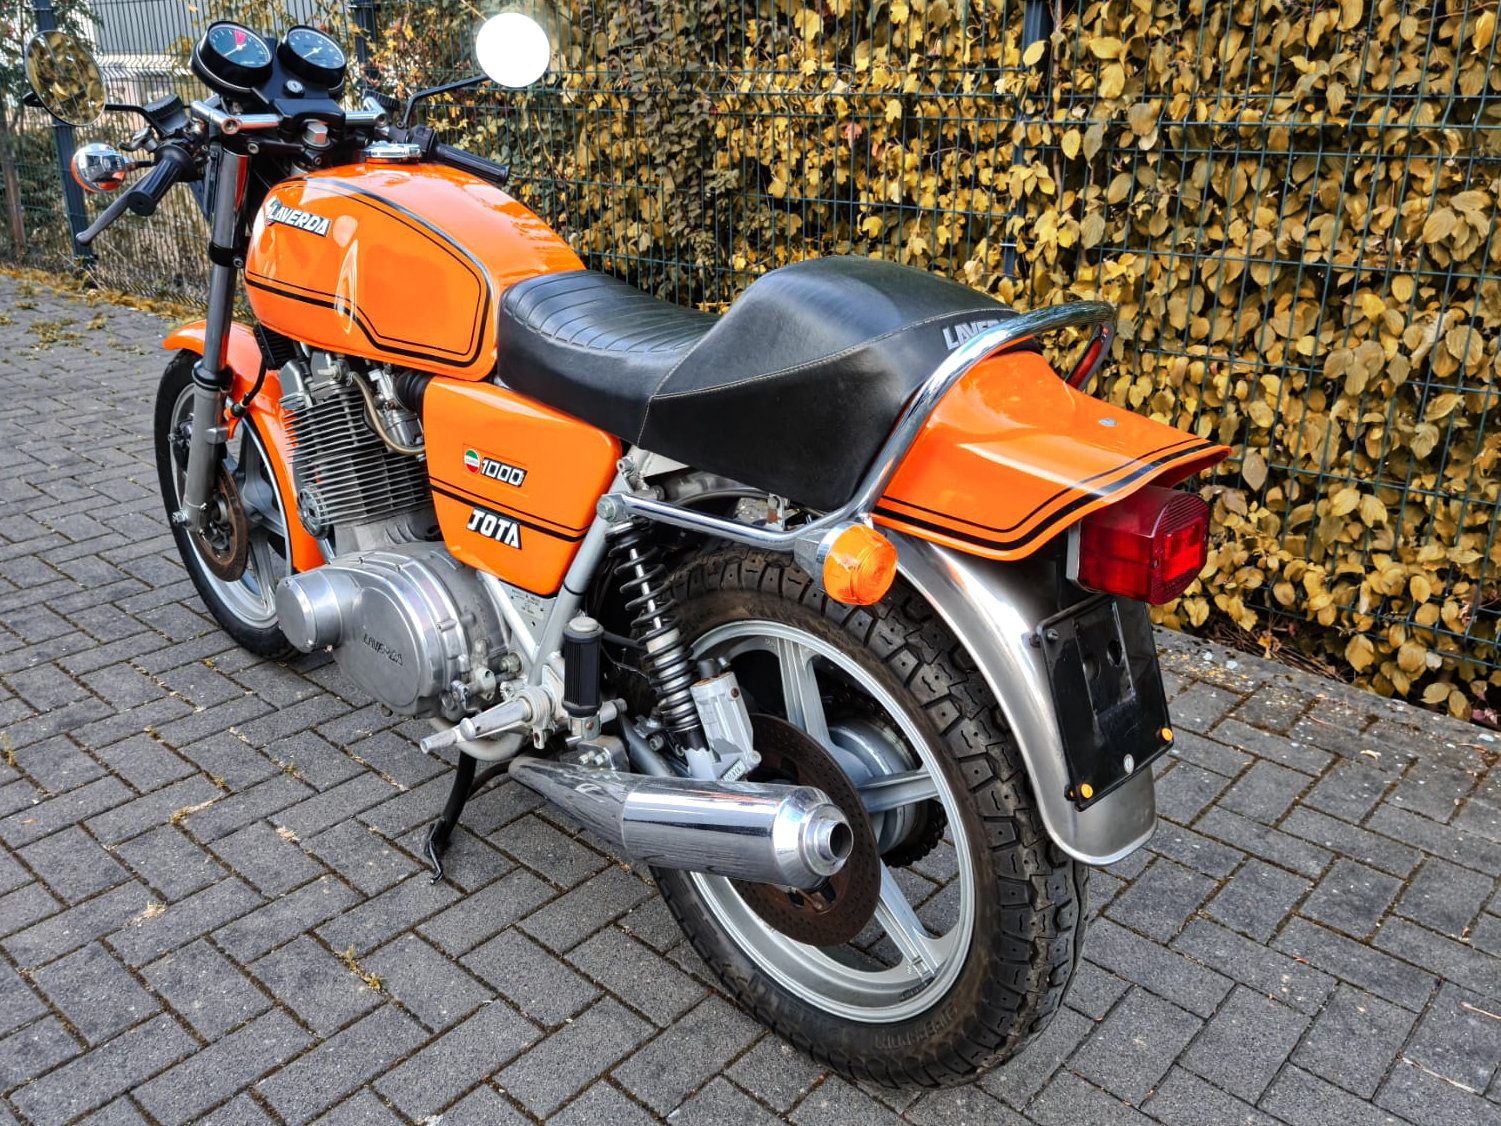 1981 Laverda 1000 Jota SOLD (picture 3 of 5)